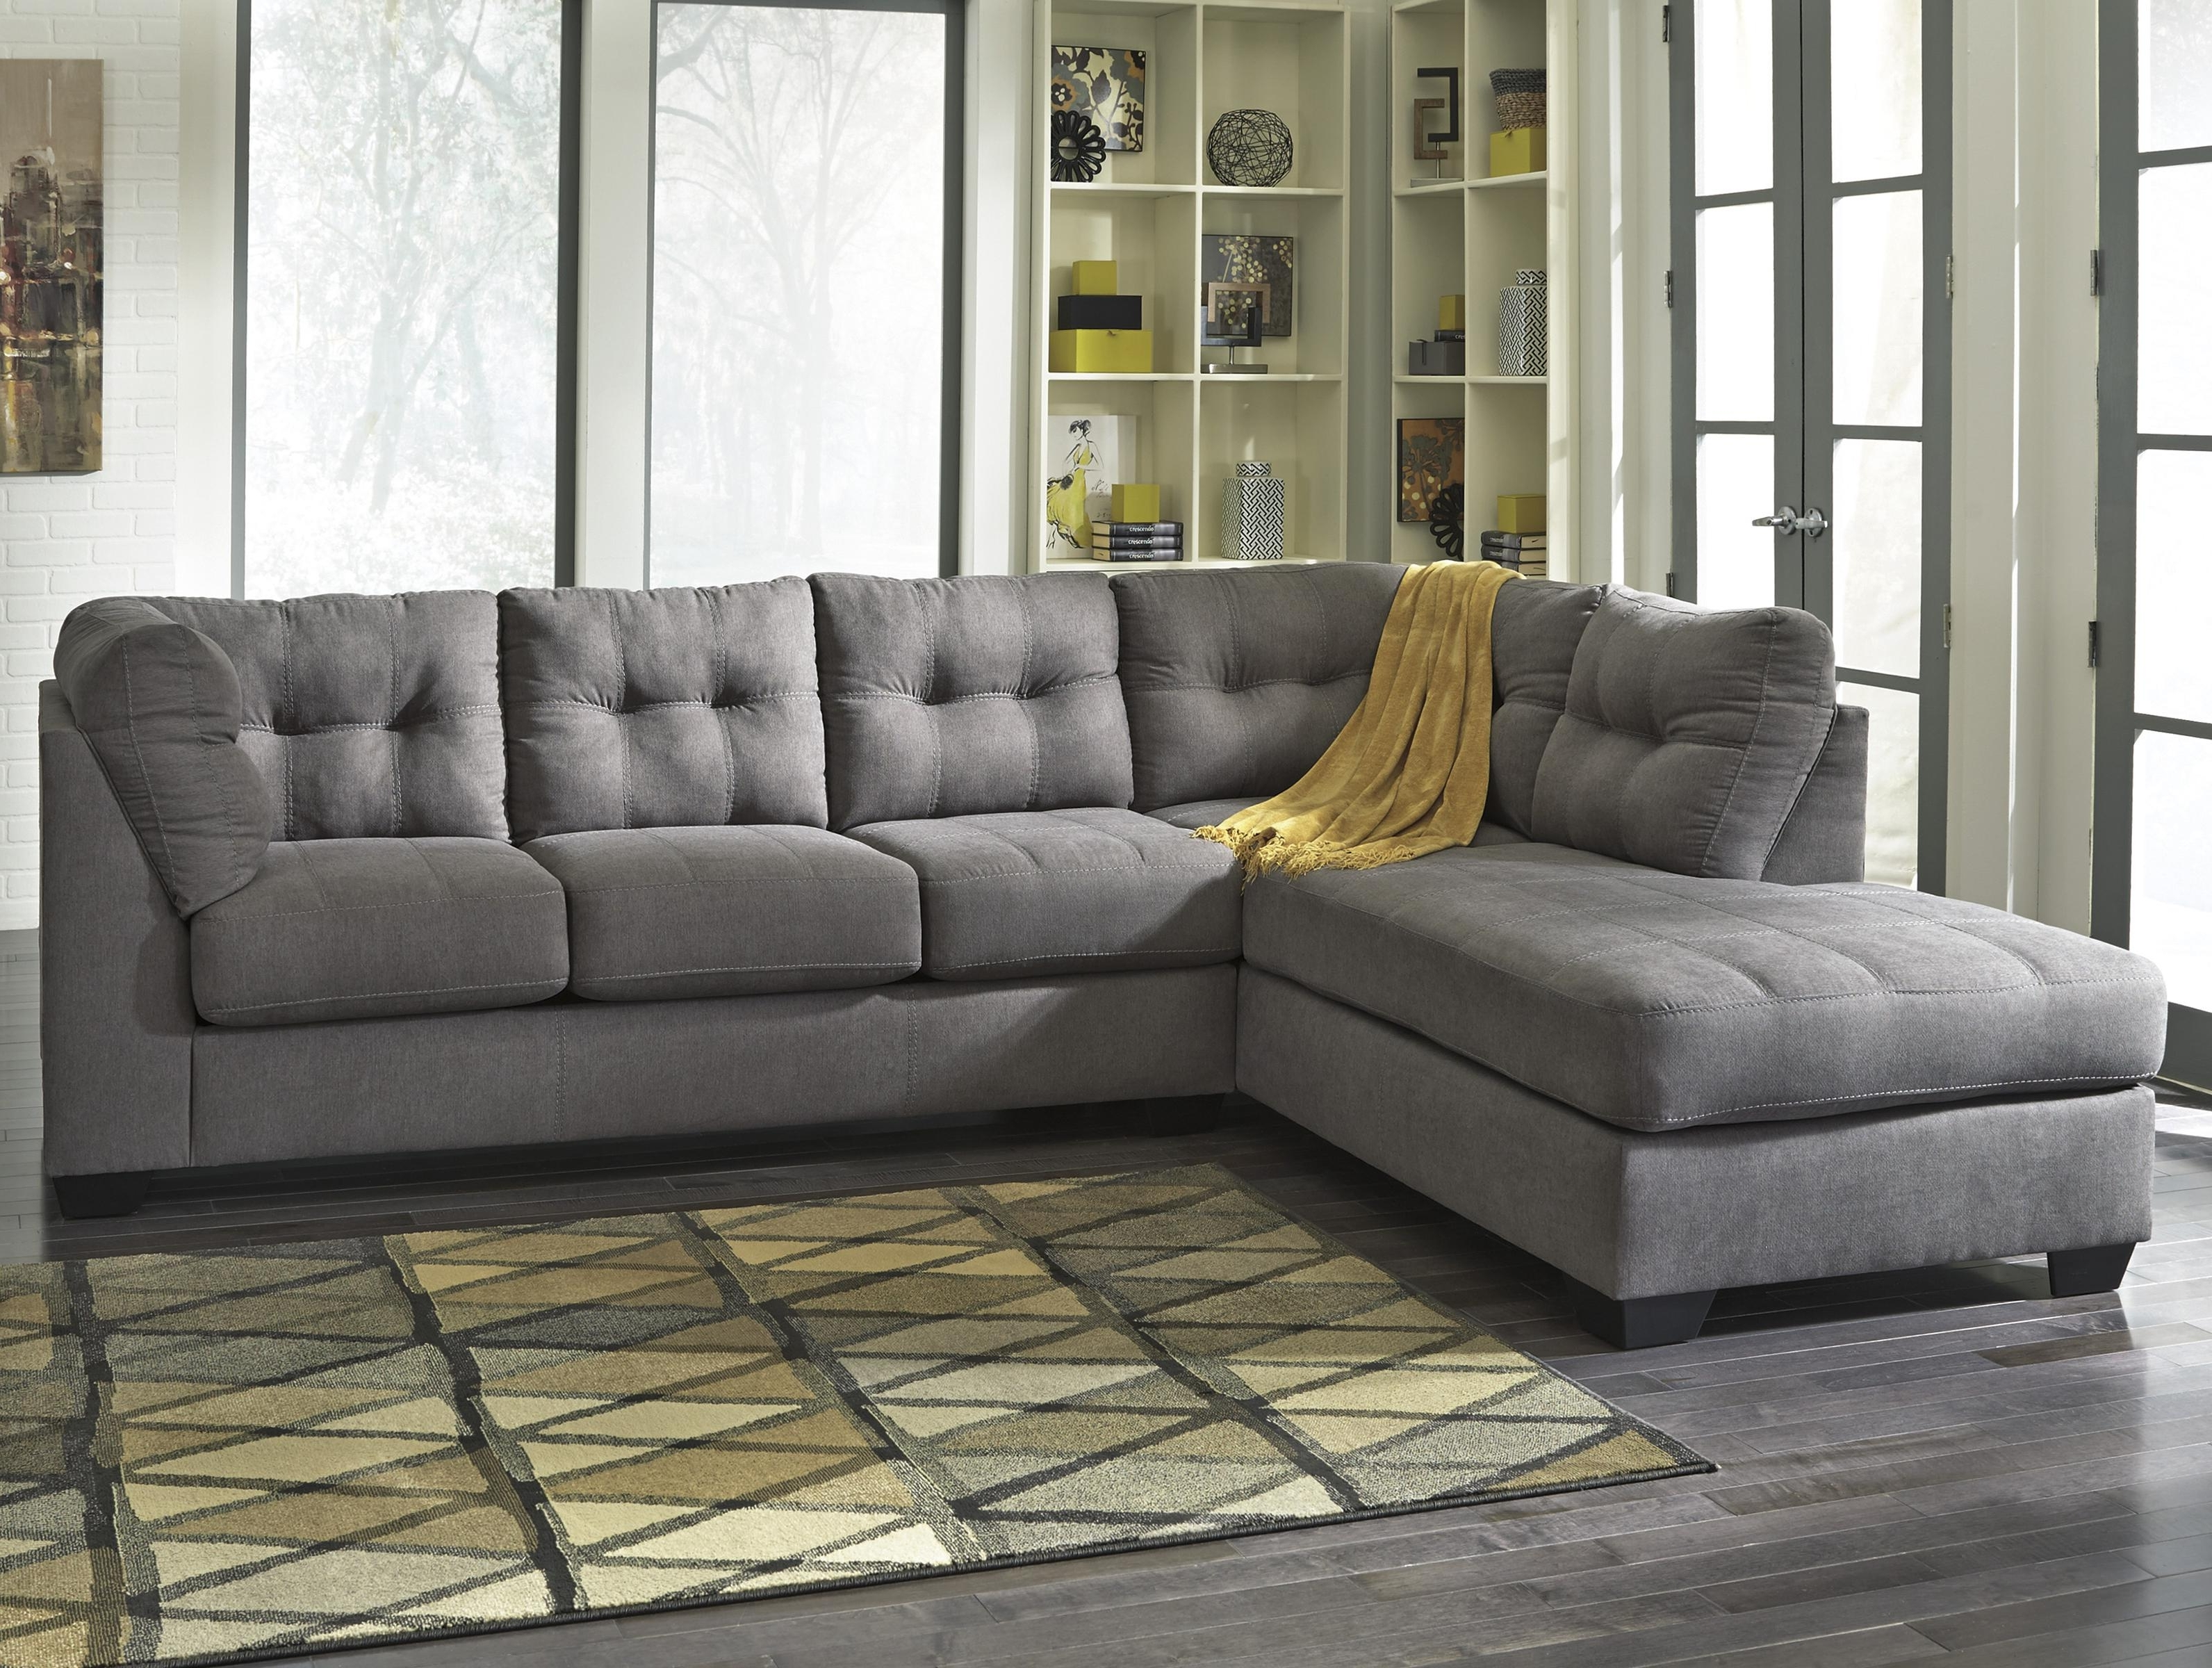 Memphis Sectional Sofas Throughout Best And Newest Benchcraftashley Maier – Charcoal 2 Piece Sectional With Left (View 9 of 20)